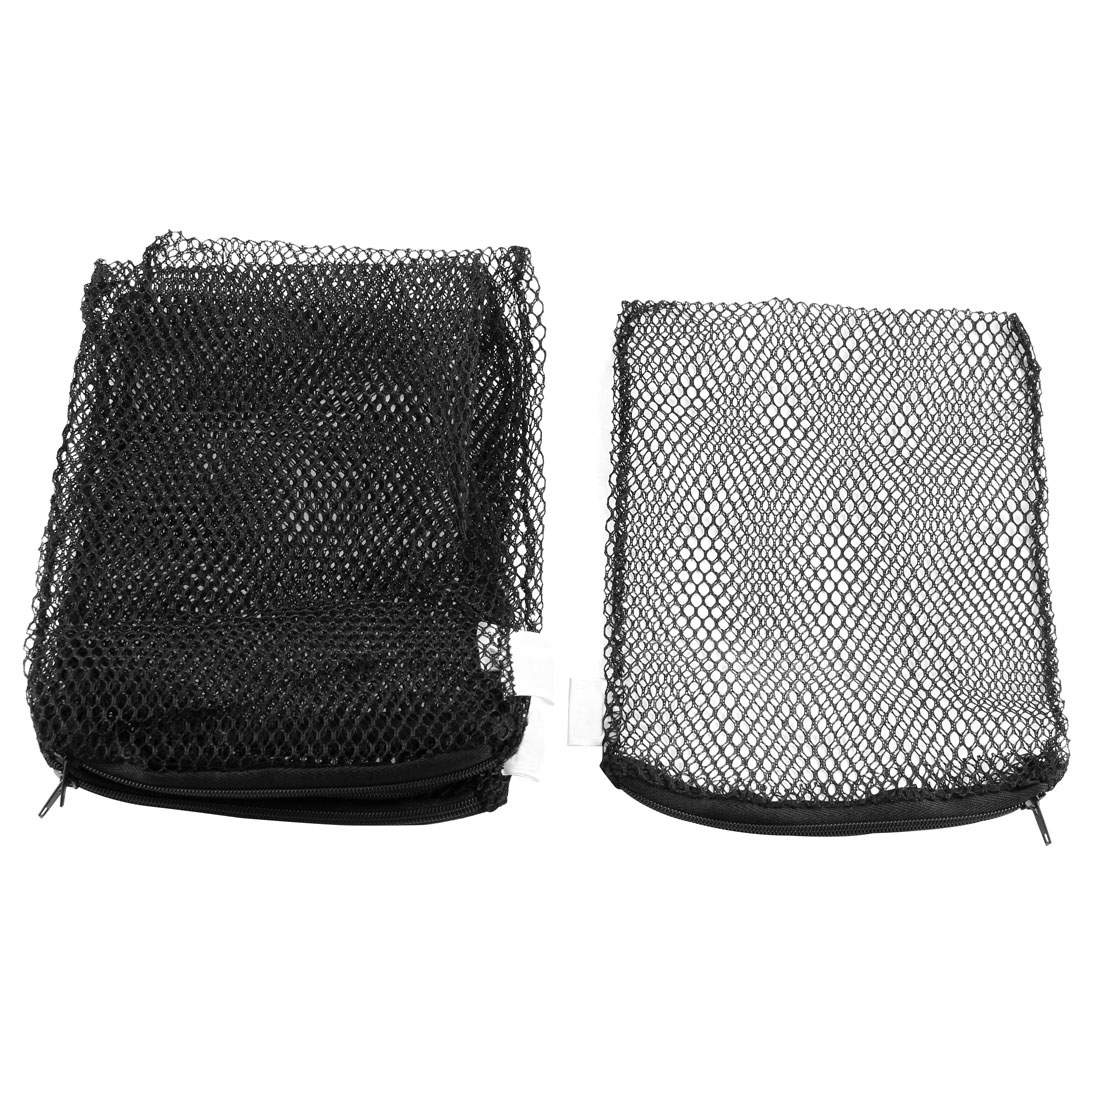 5pcs Zipper Closure Black Nylon Aquarium Fry Fish Isolation Media Mesh Net Bags Feeder 210mm x 155mm